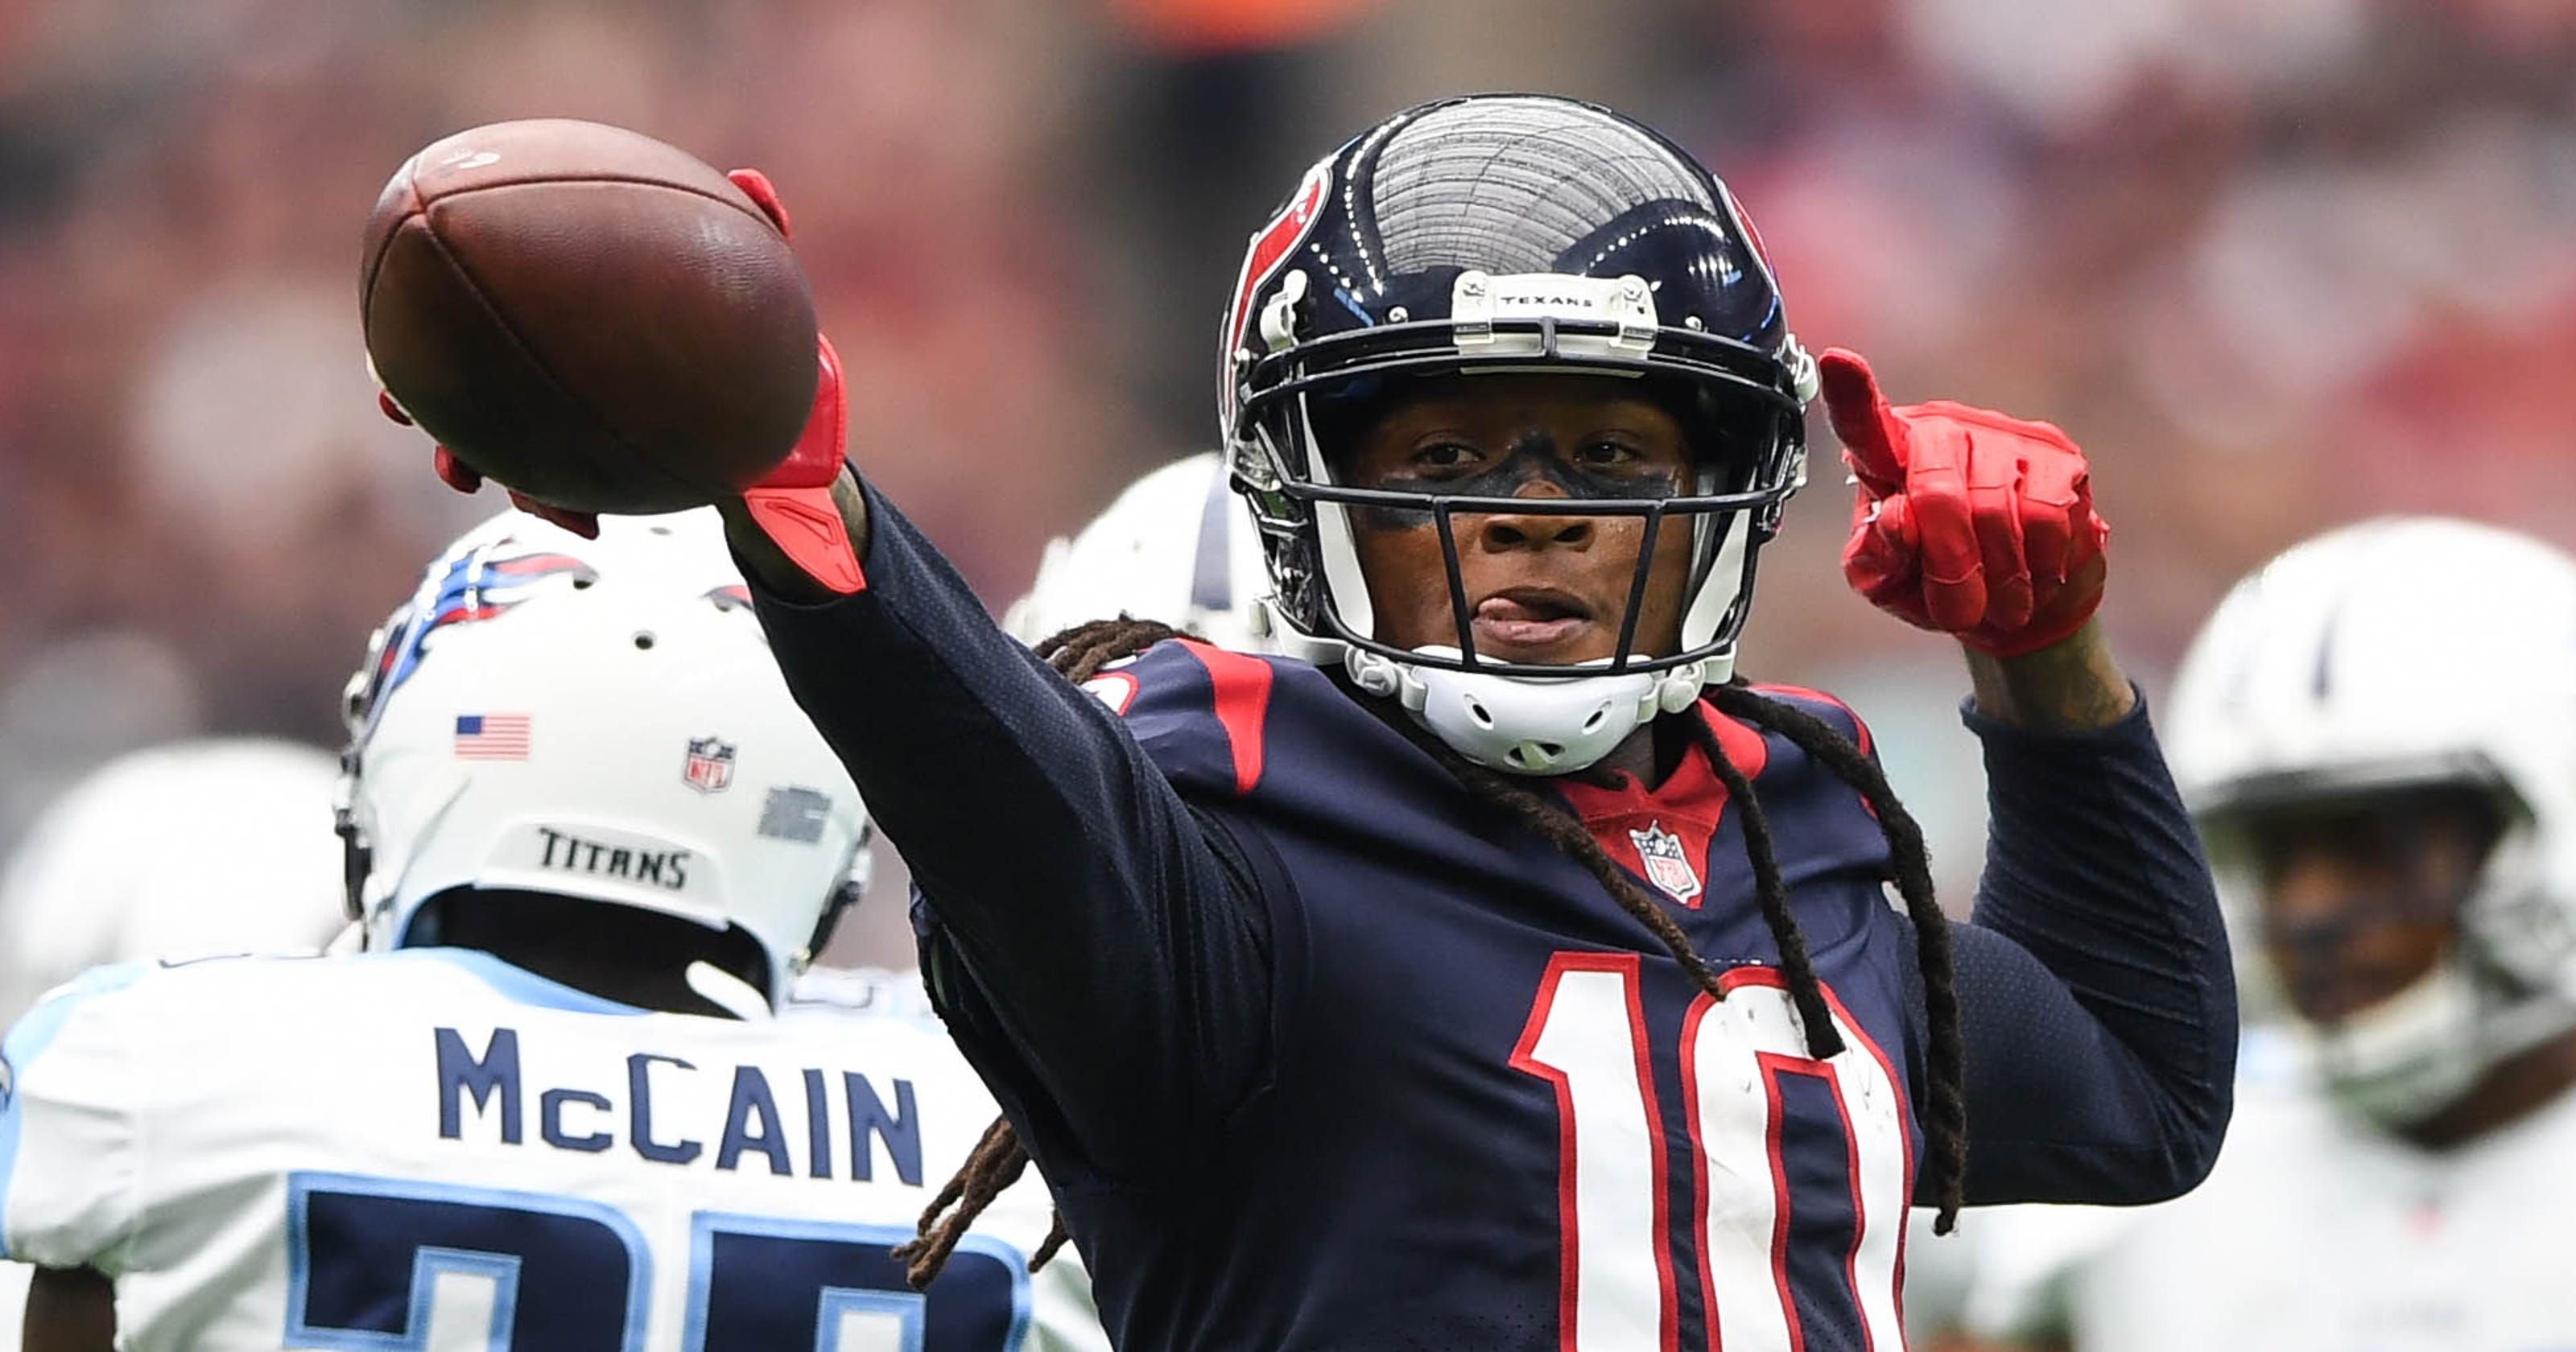 cc222d14 Texans' DeAndre Hopkins misses practice as Bob McNair apologizes